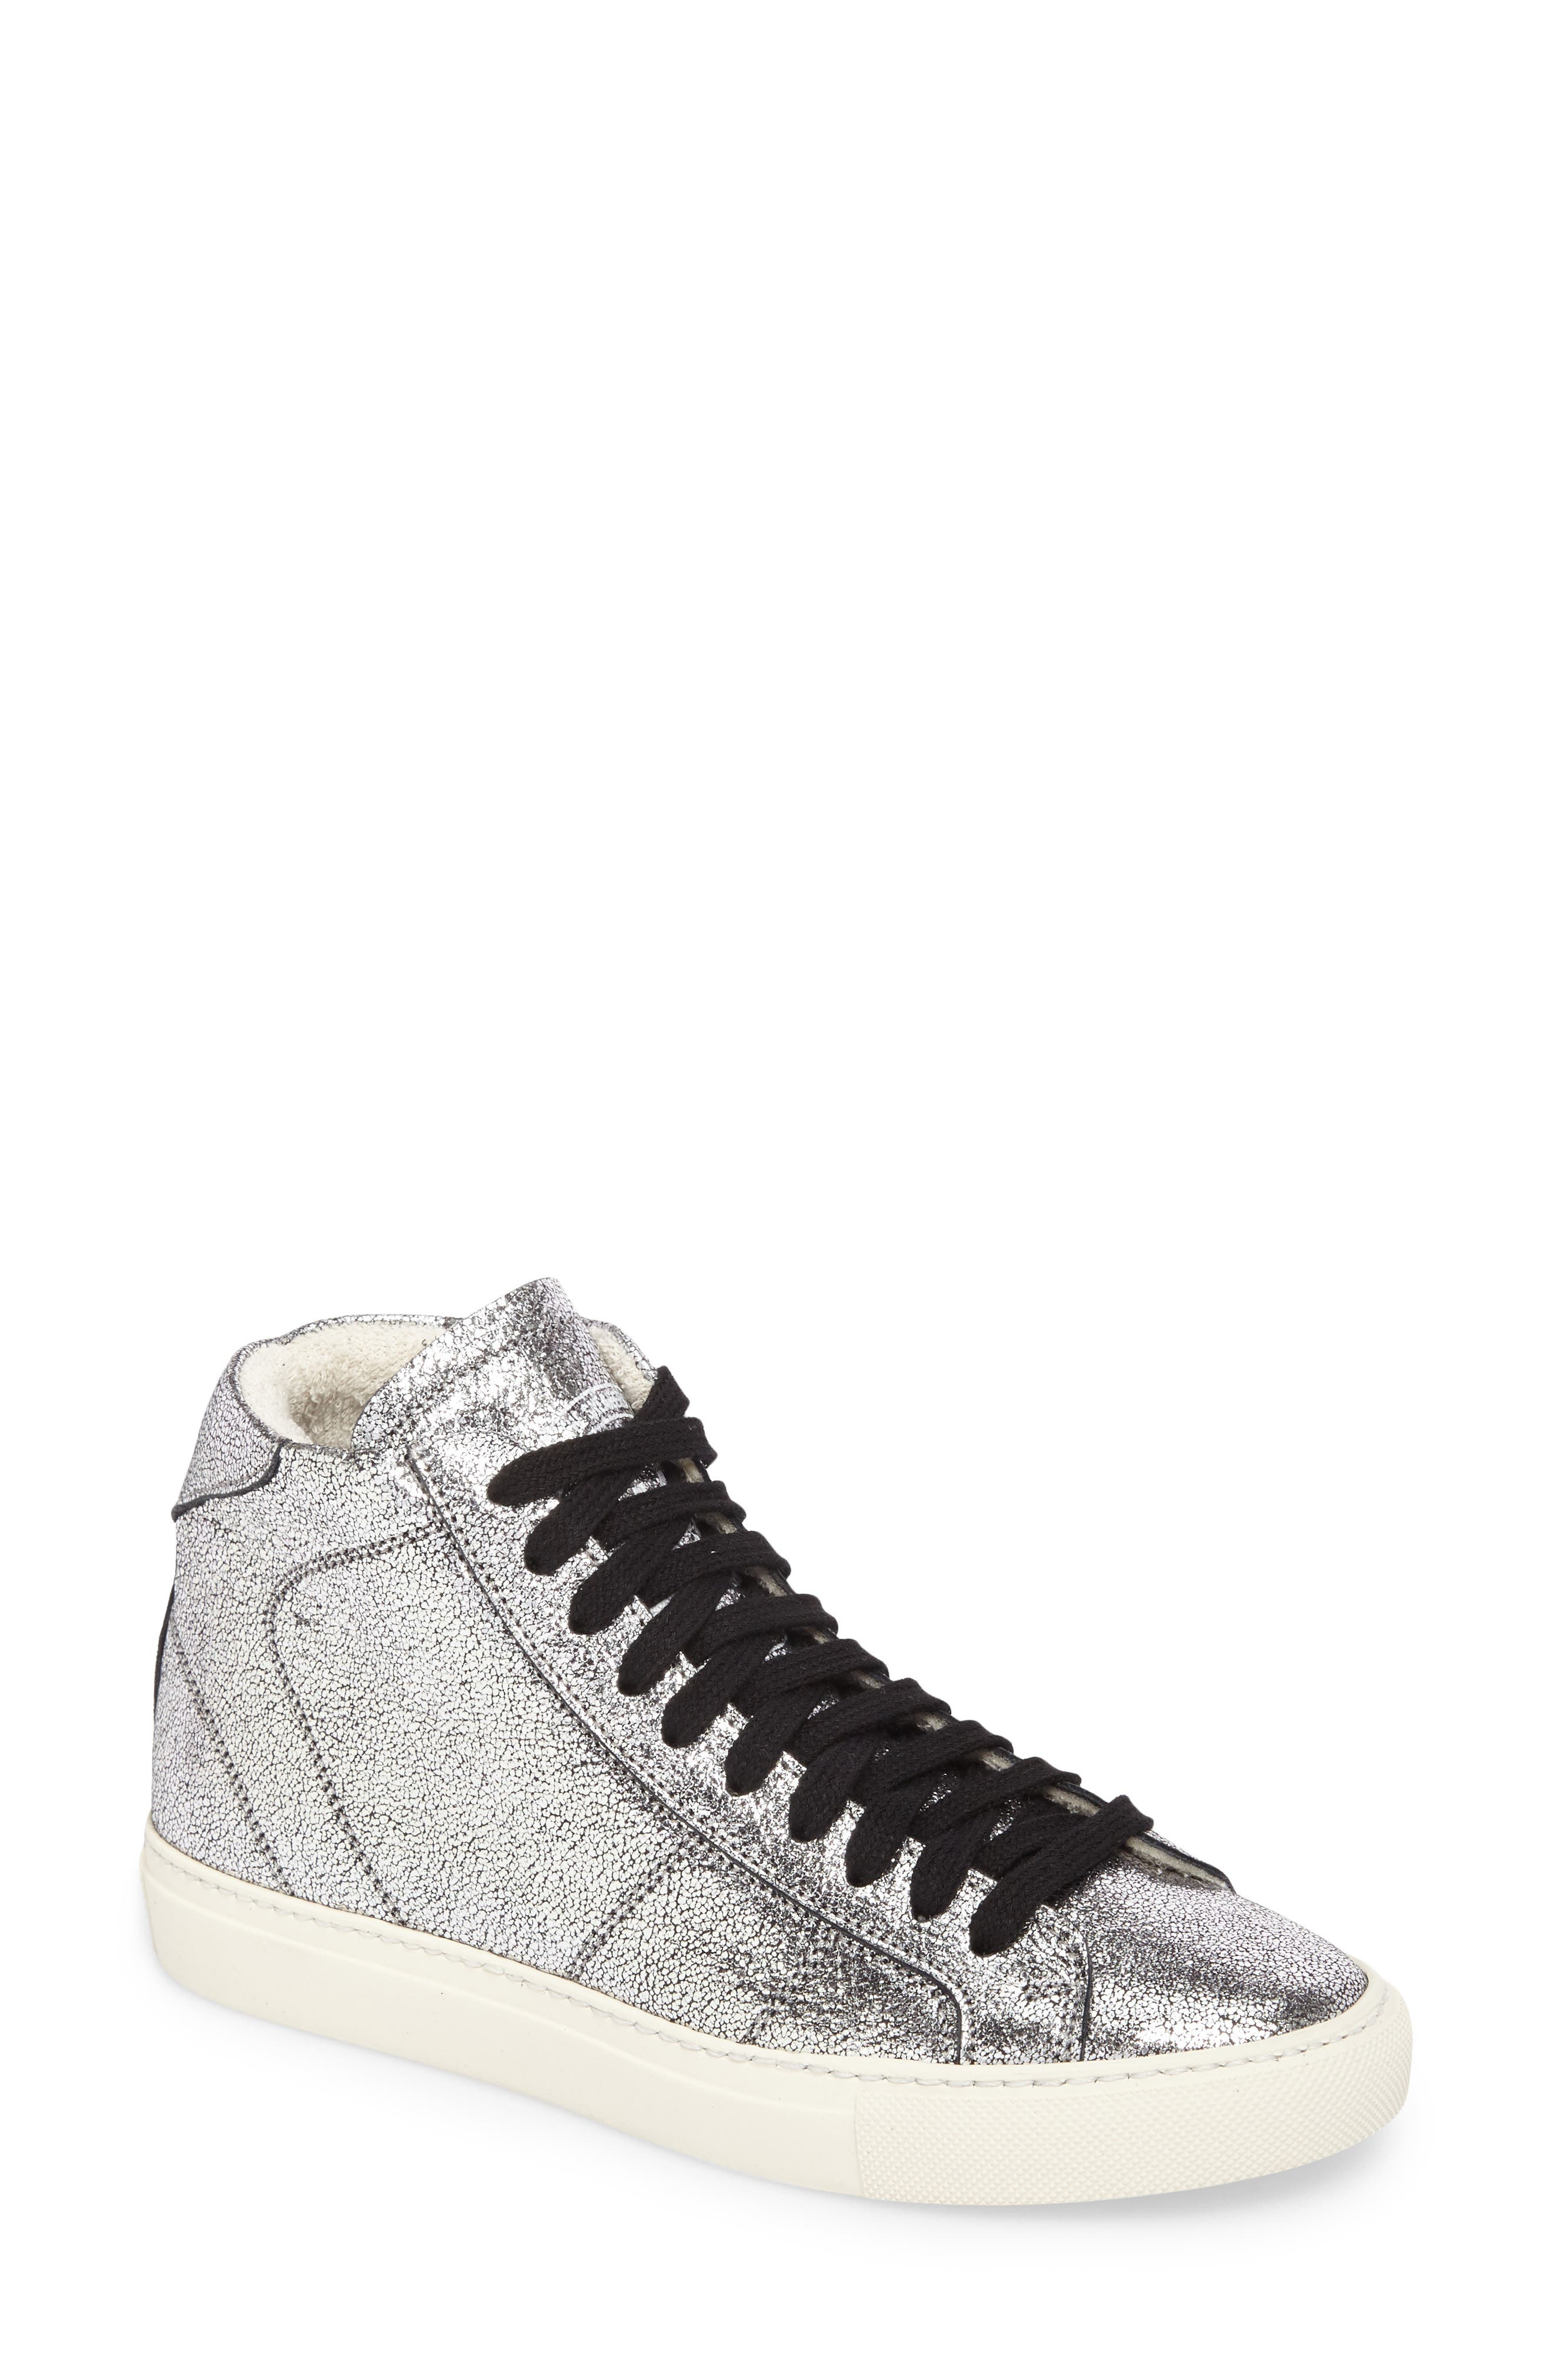 Star 2.0 Sneaker,                         Main,                         color, SILVER LEATHER